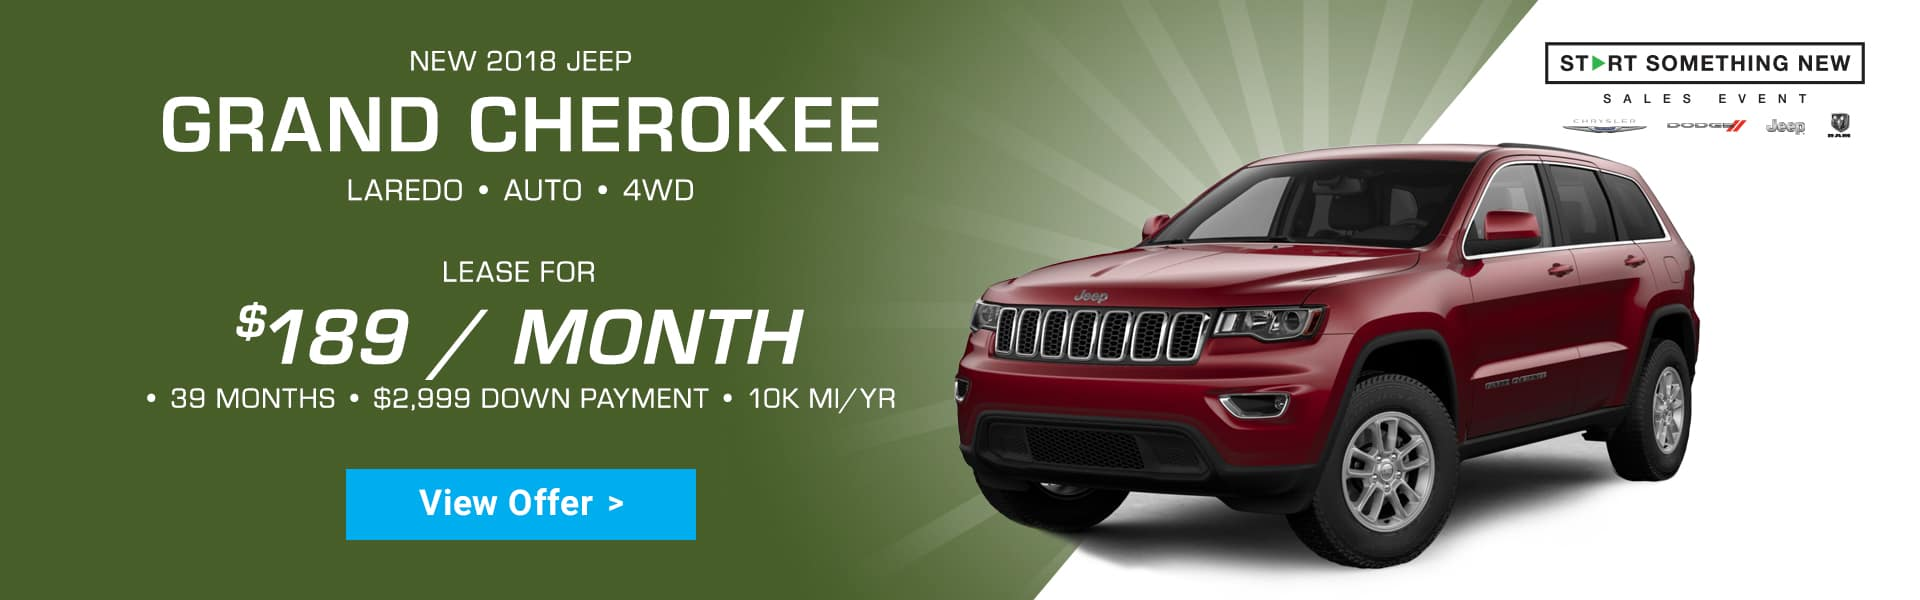 Harr Jeep Grand Cherokee Special Offer